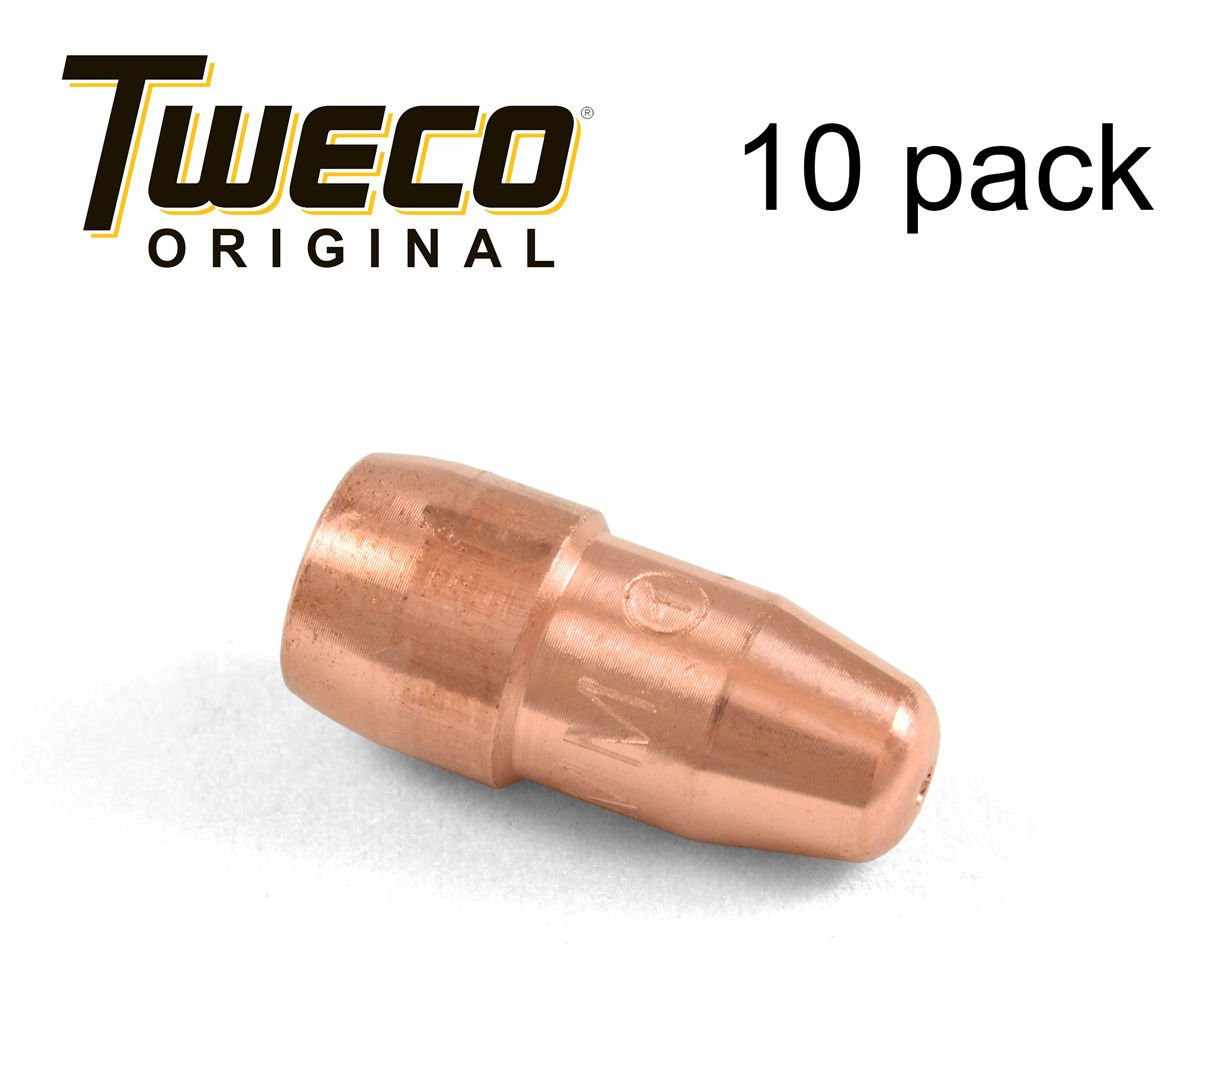 Tweco VTS35 Velocity Light Duty MIG Welding Contact Tip, 0.035' Wire Size, Standard 0.035 Wire Size Victor Technologies International